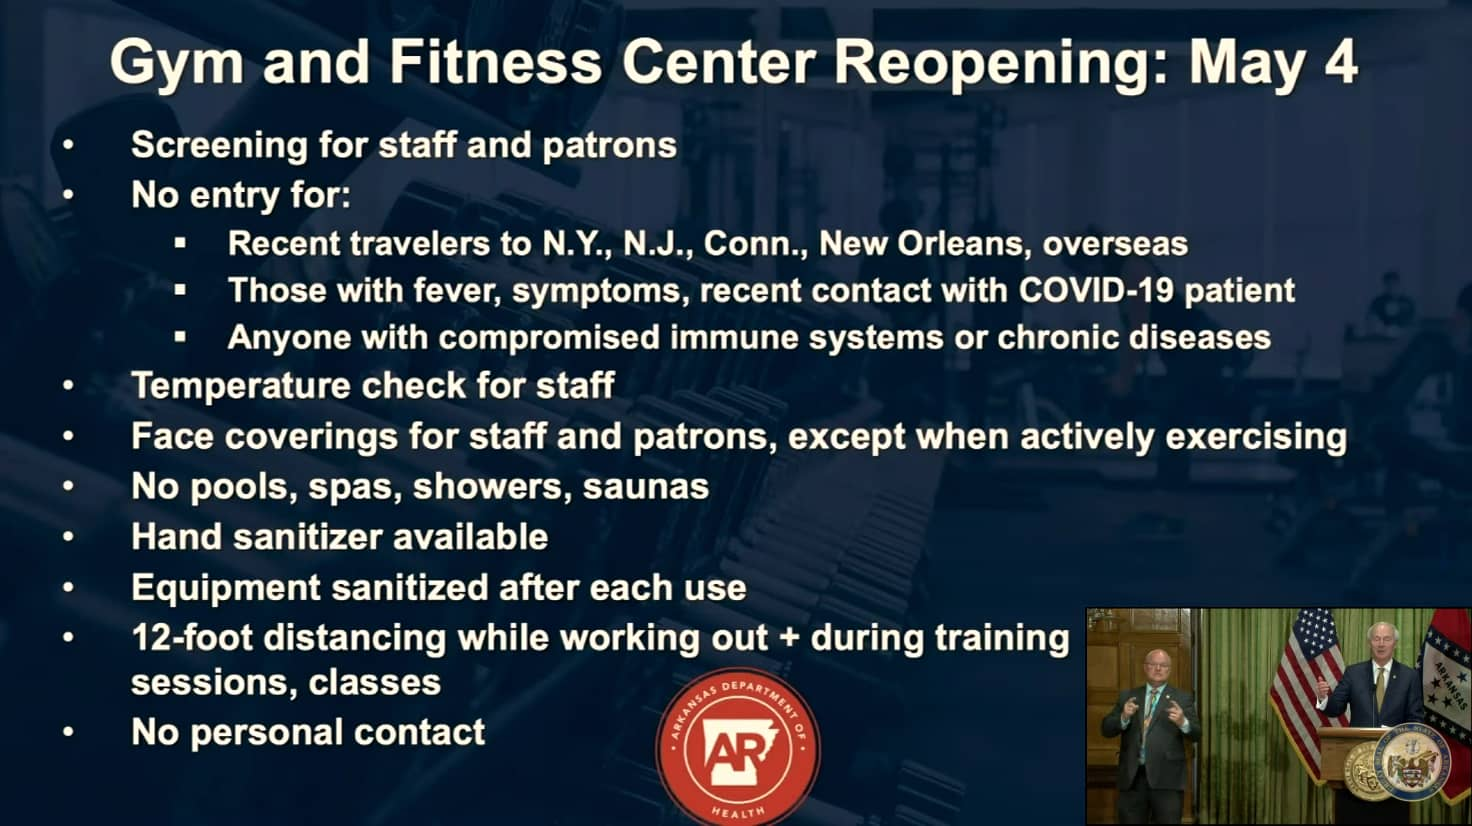 GYM AND FITNESS GUIDELINES